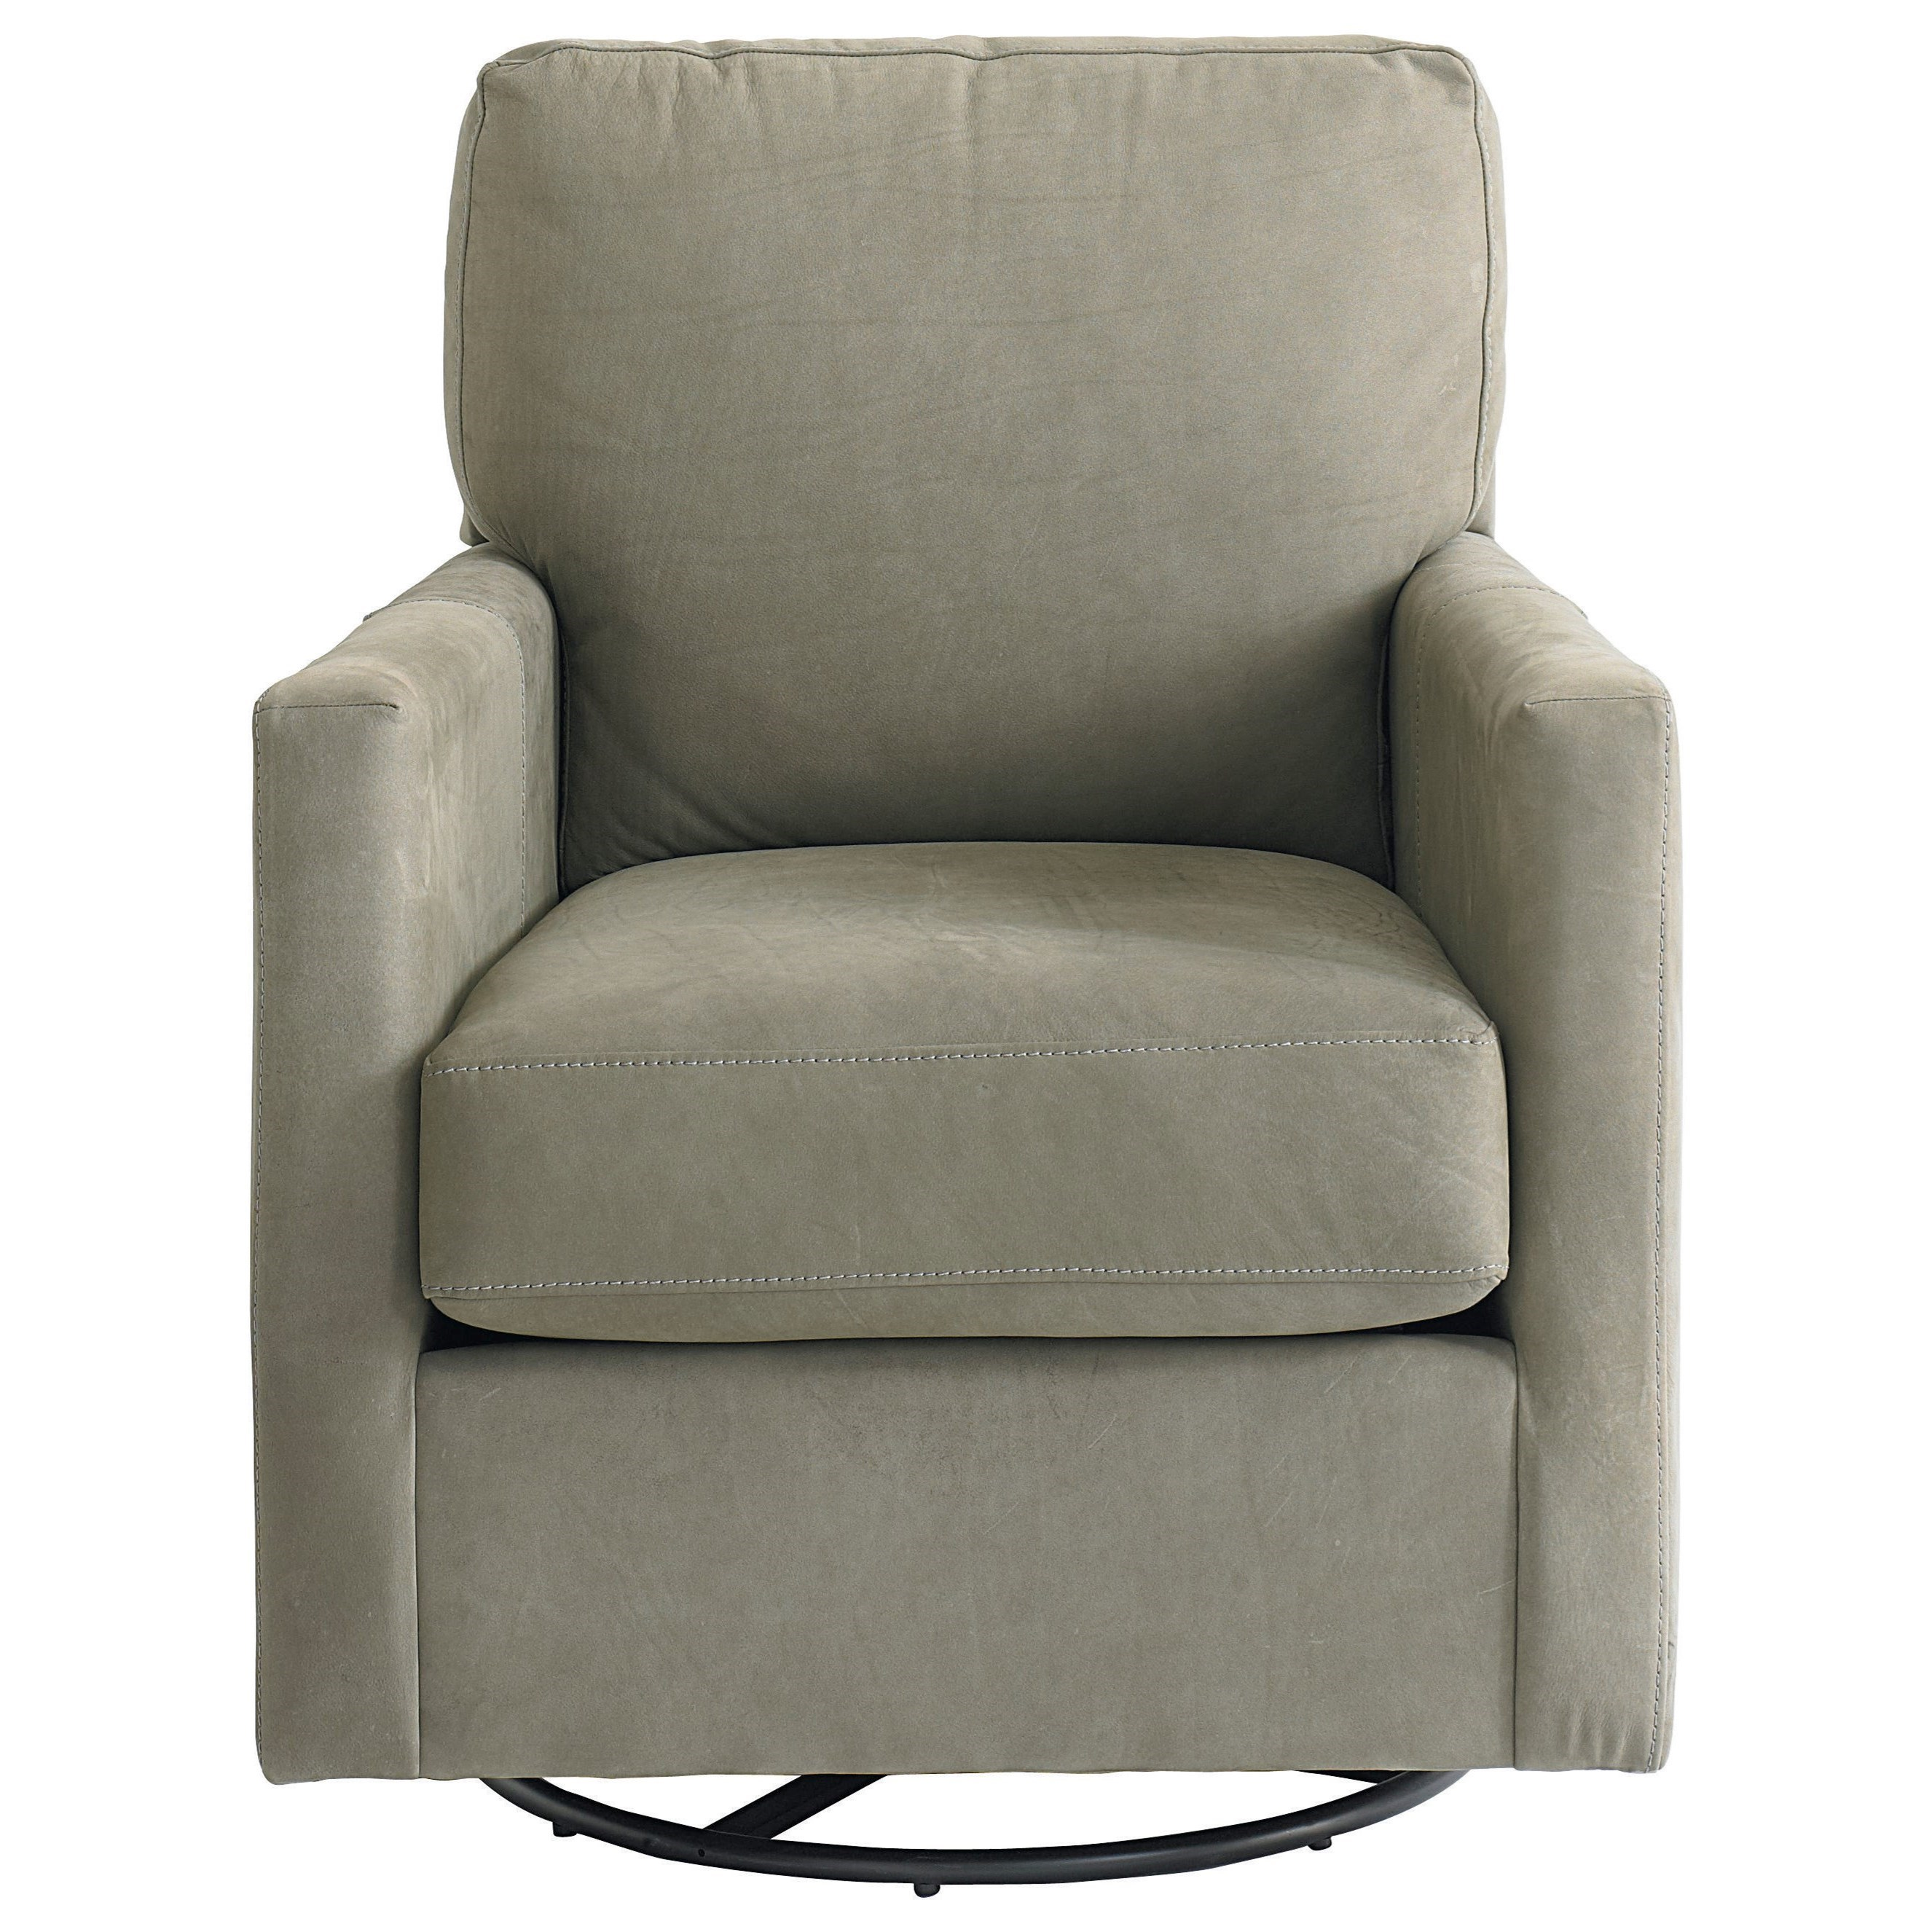 Upholstered Glider Chair Bassett Trent 1144 09 Contemporary Swivel Glider Chair